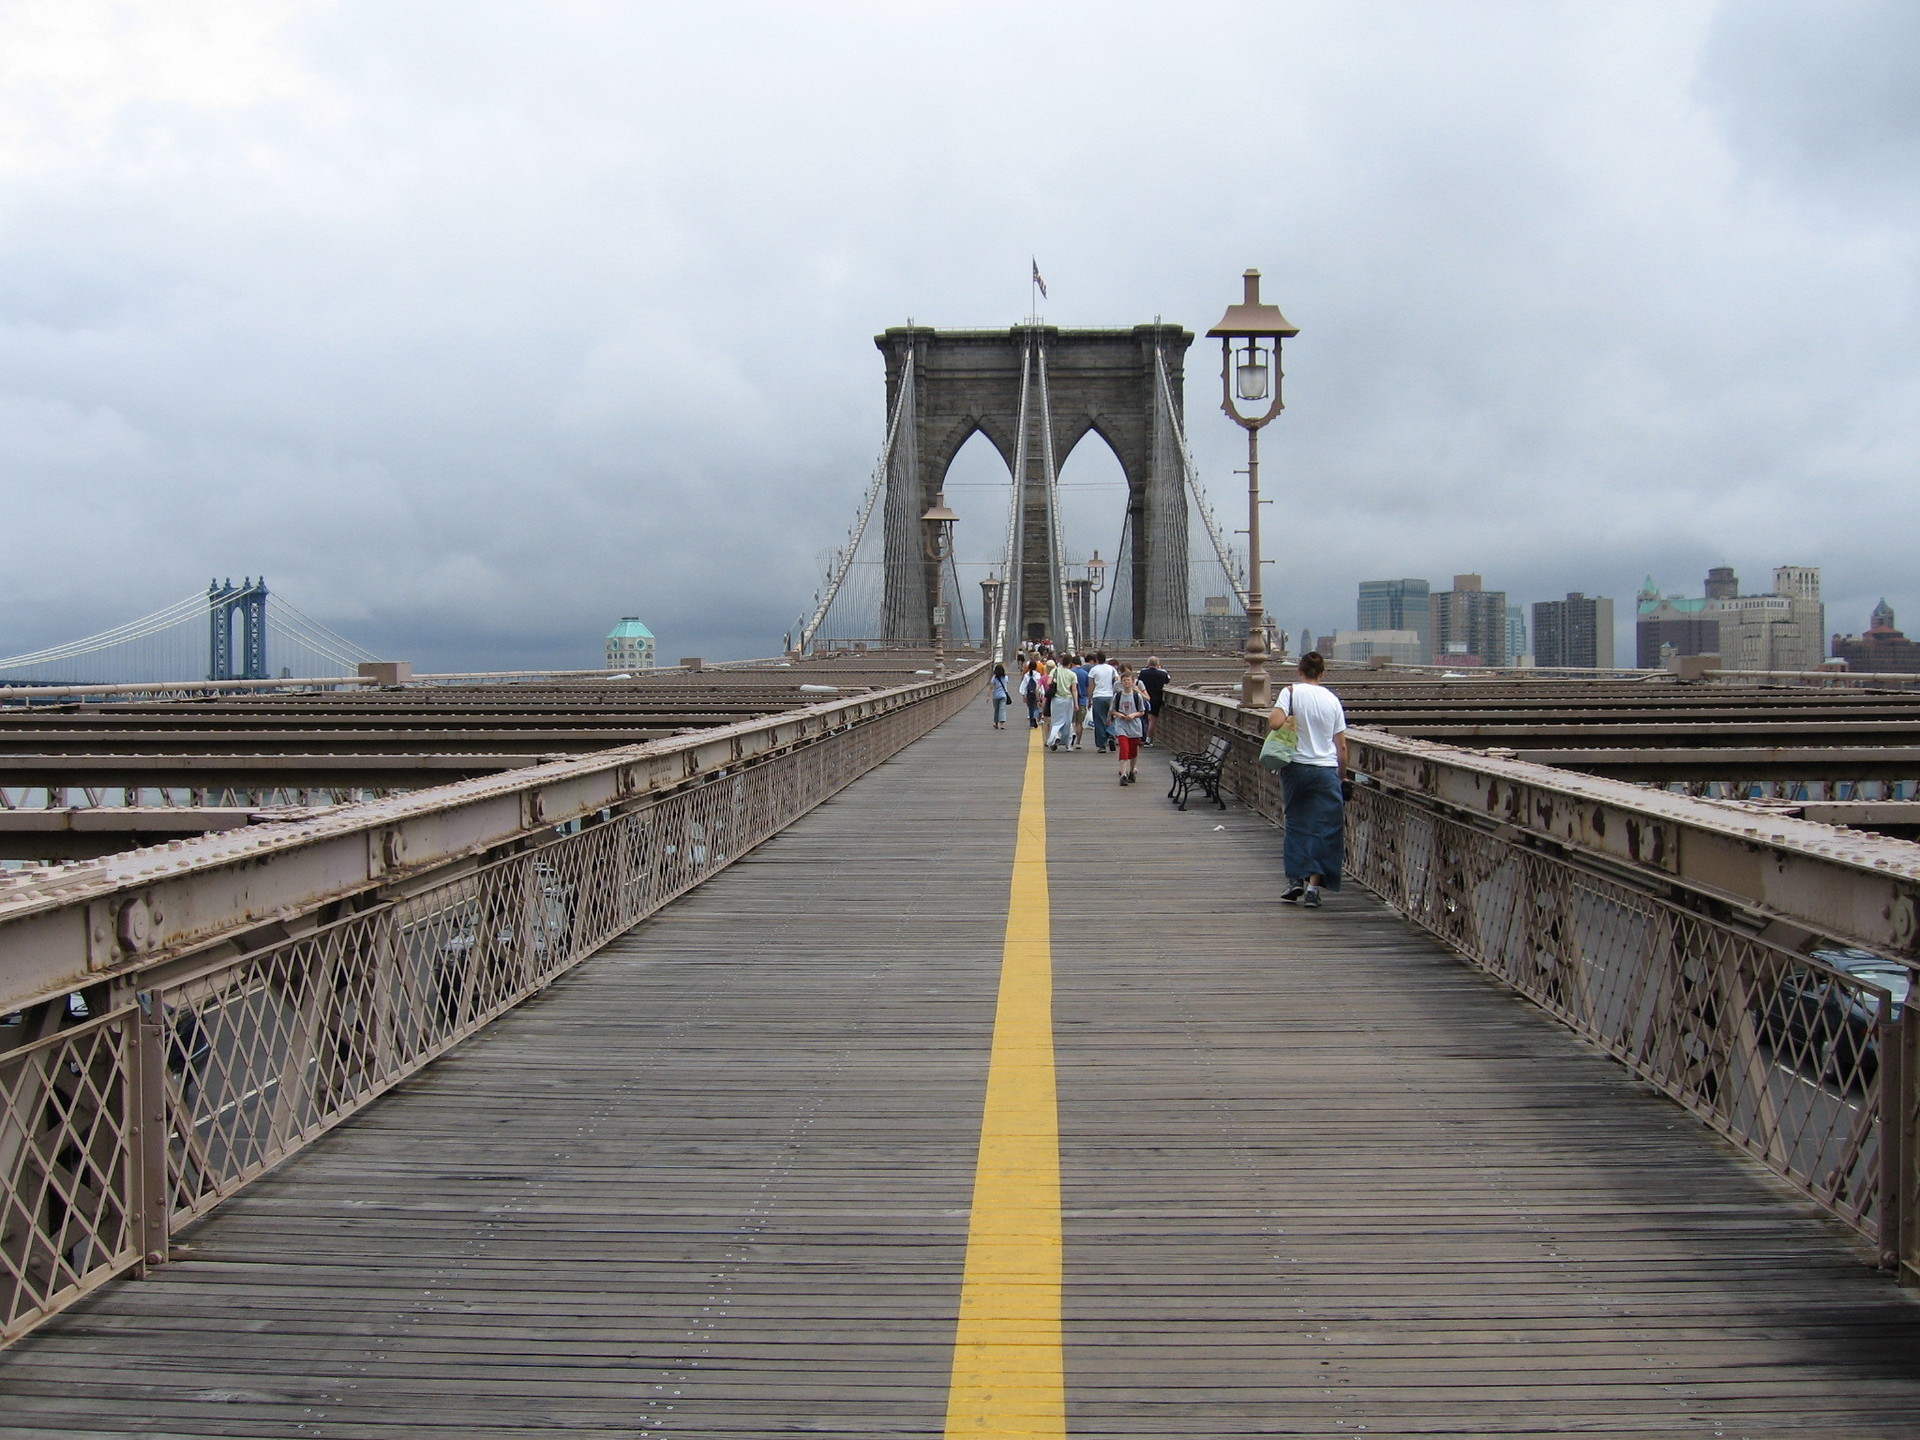 How to walk across the brooklyn bridge